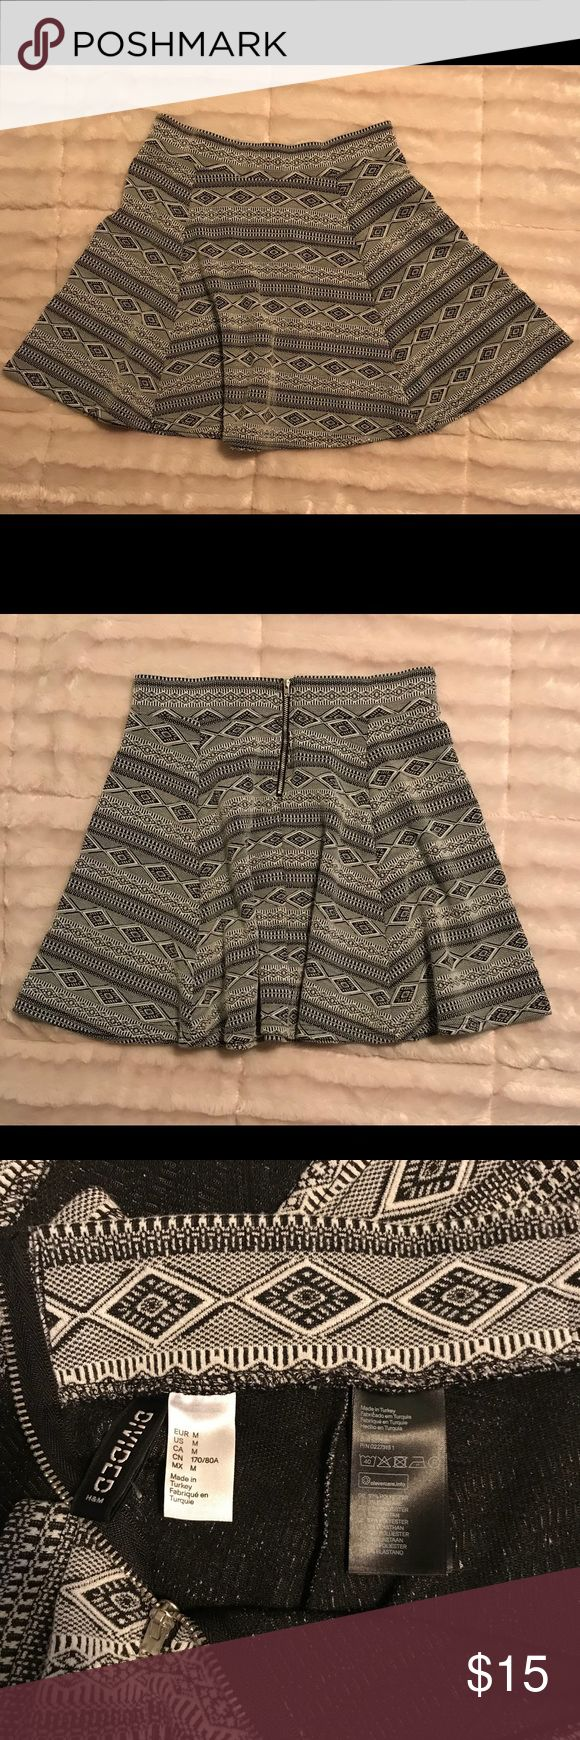 EUC H&M Divided skirt Black and white Aztec design skirt. Super cute! Only worn twice. Divided Skirts Circle & Skater